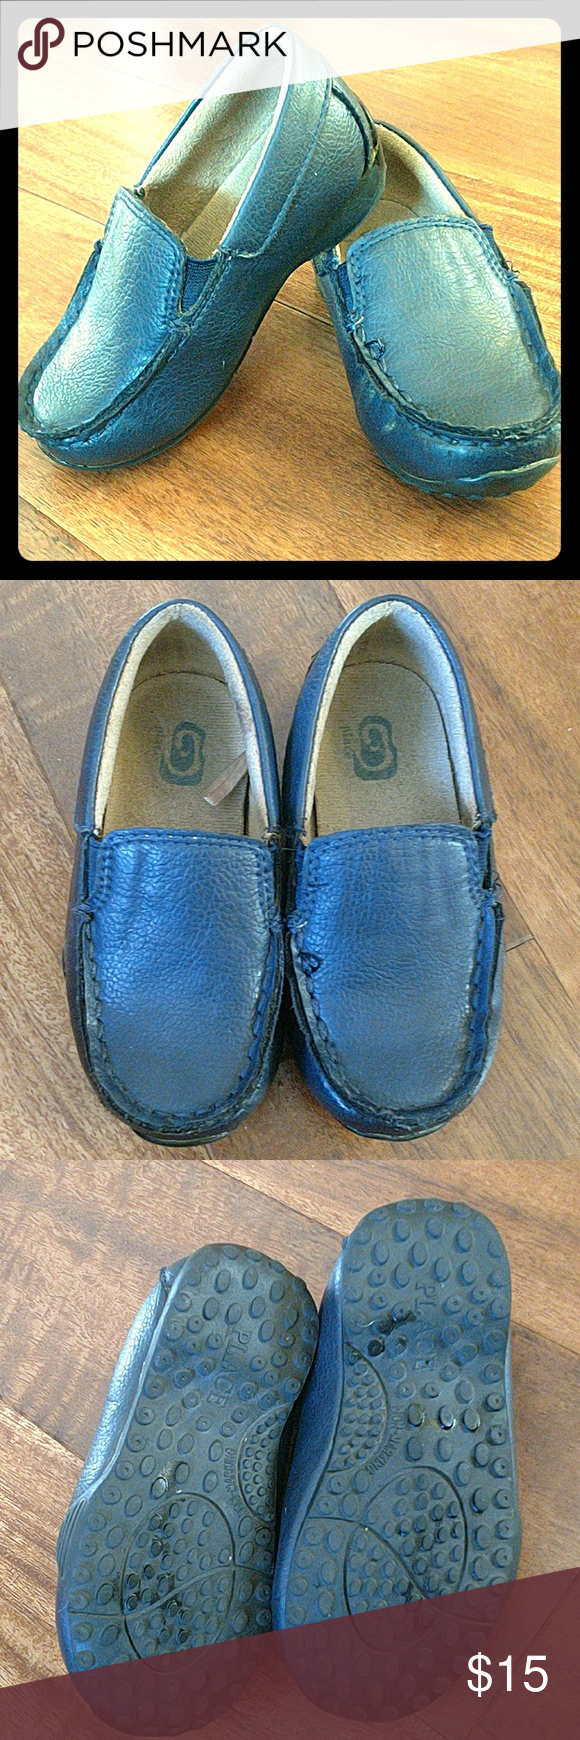 Navy blue dress shoes for wedding  Childrenus Place Loafers  Dress shoes Navy blue and Conditioning